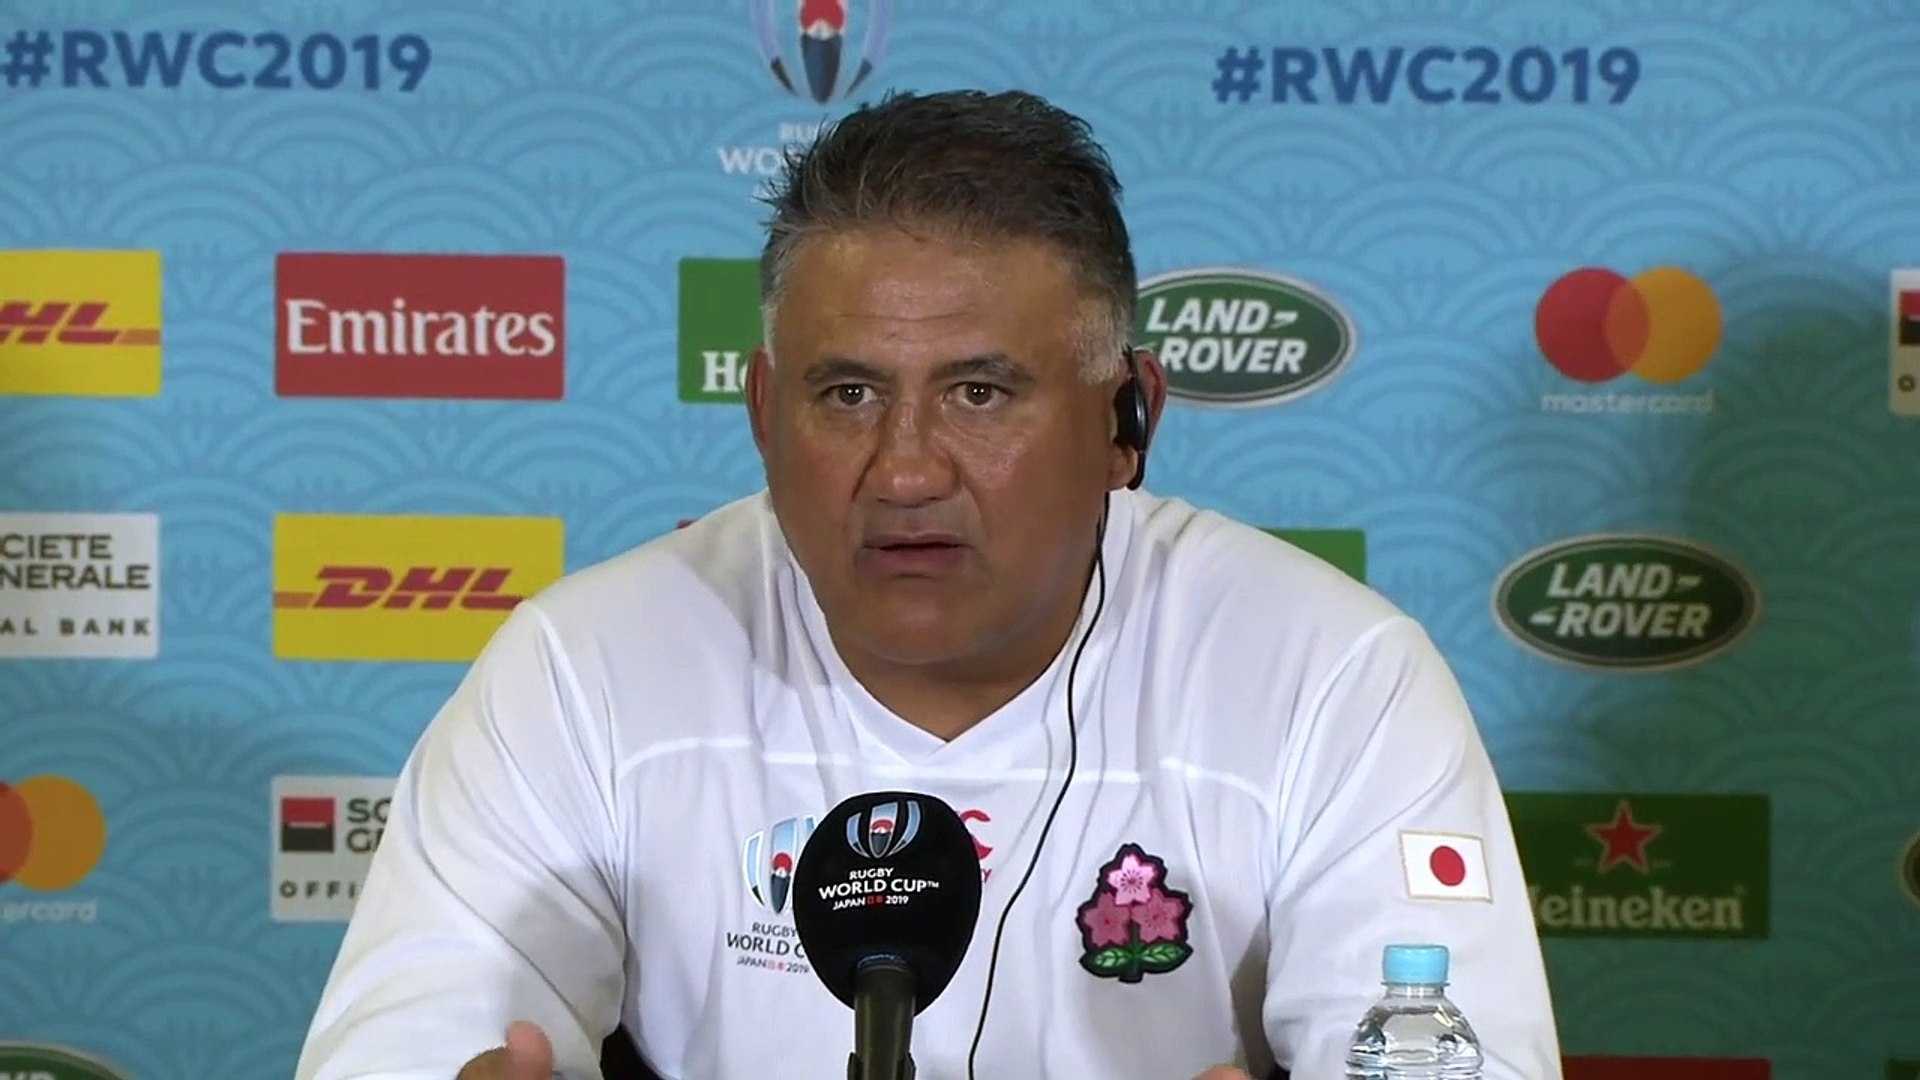 Rugby - Jamie Joseph on Japan's historic win over Ireland at Rugby World Cup 2019